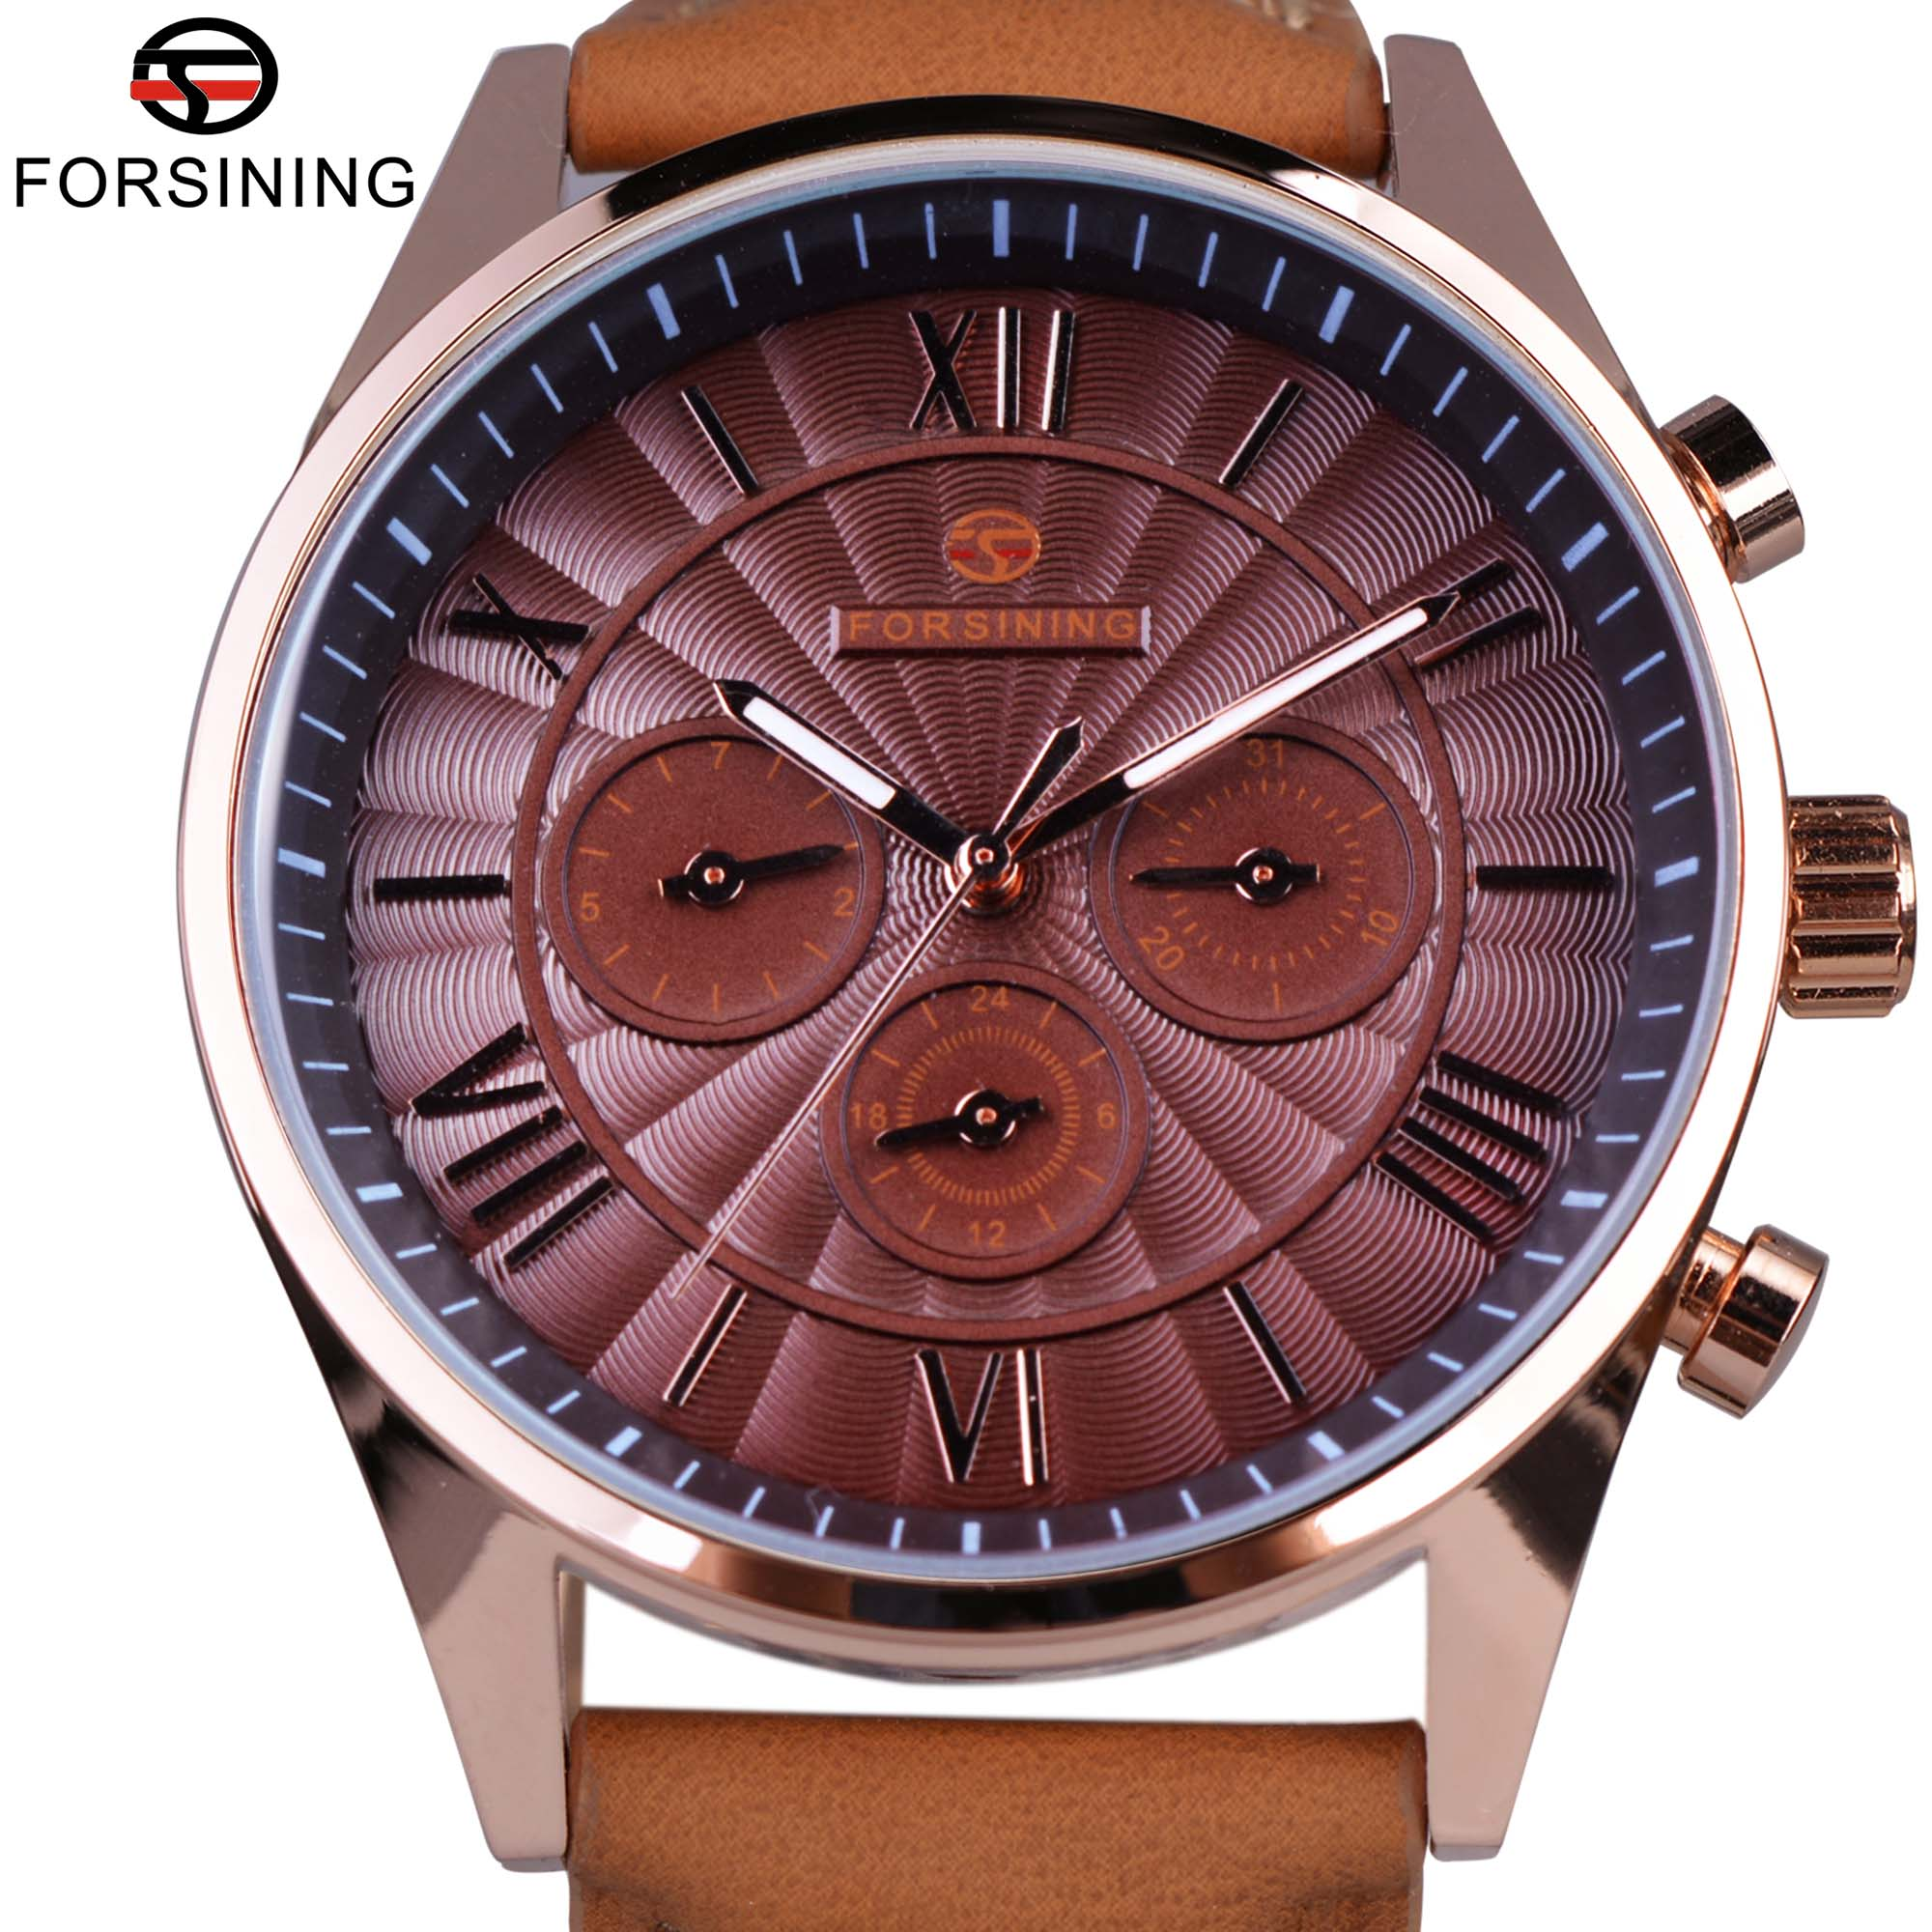 Forsining Classic Series Swirl Dial Suede Strap 6 Hands Calendar Display Men Watches Top Brand Luxury Automatic Watch Clock Men электрическая варочная поверхность simfer h30d12b011